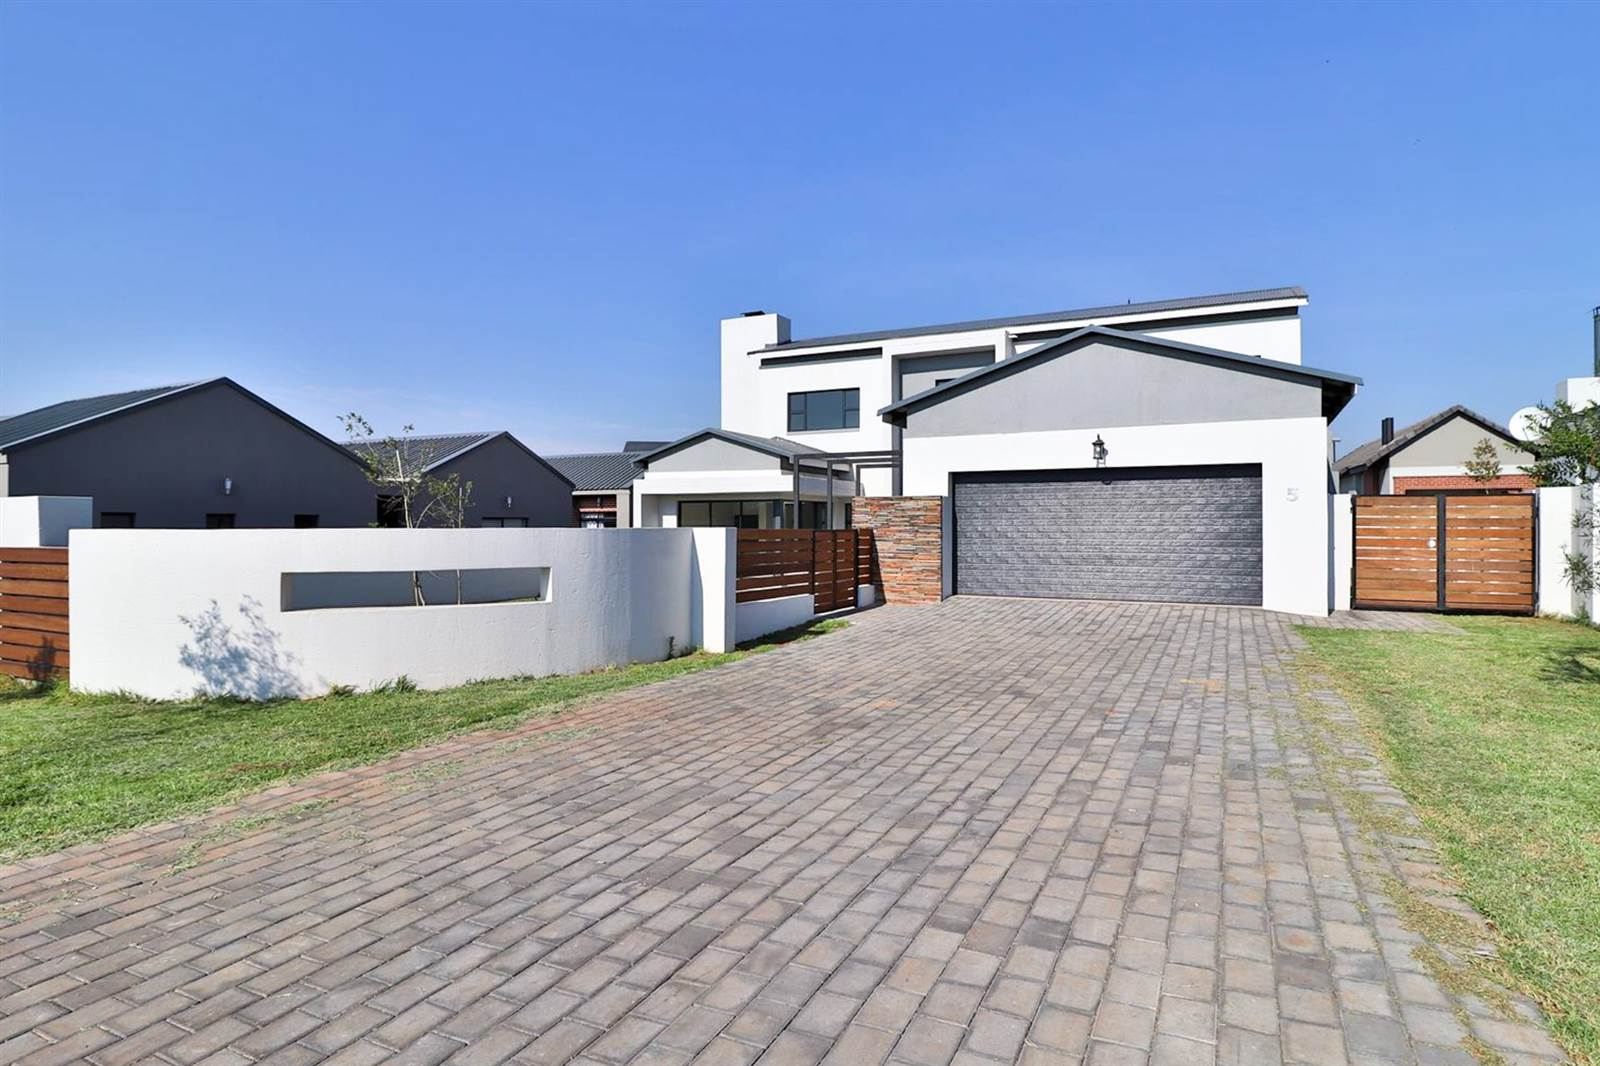 3 Bed House for sale in Midstream Estate T1812348